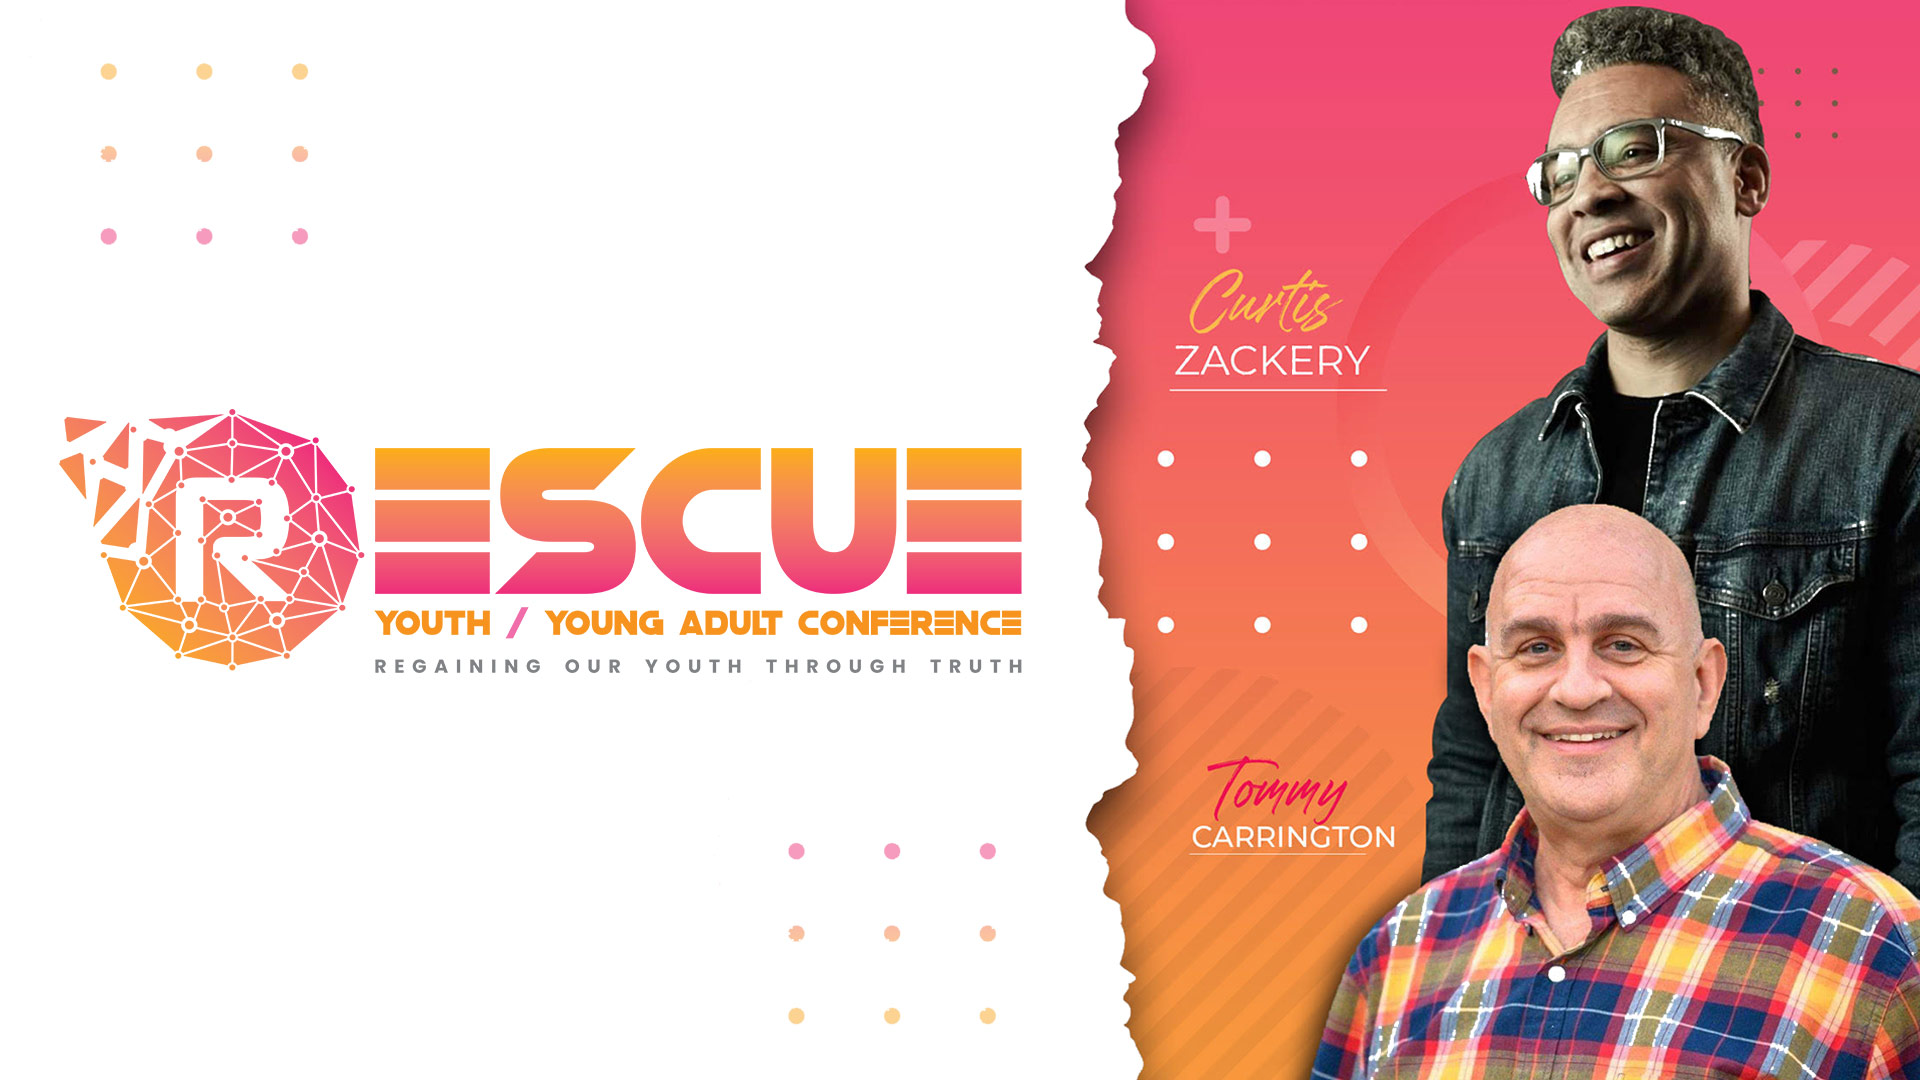 Rescue Youth and Young Adult Conference 2021